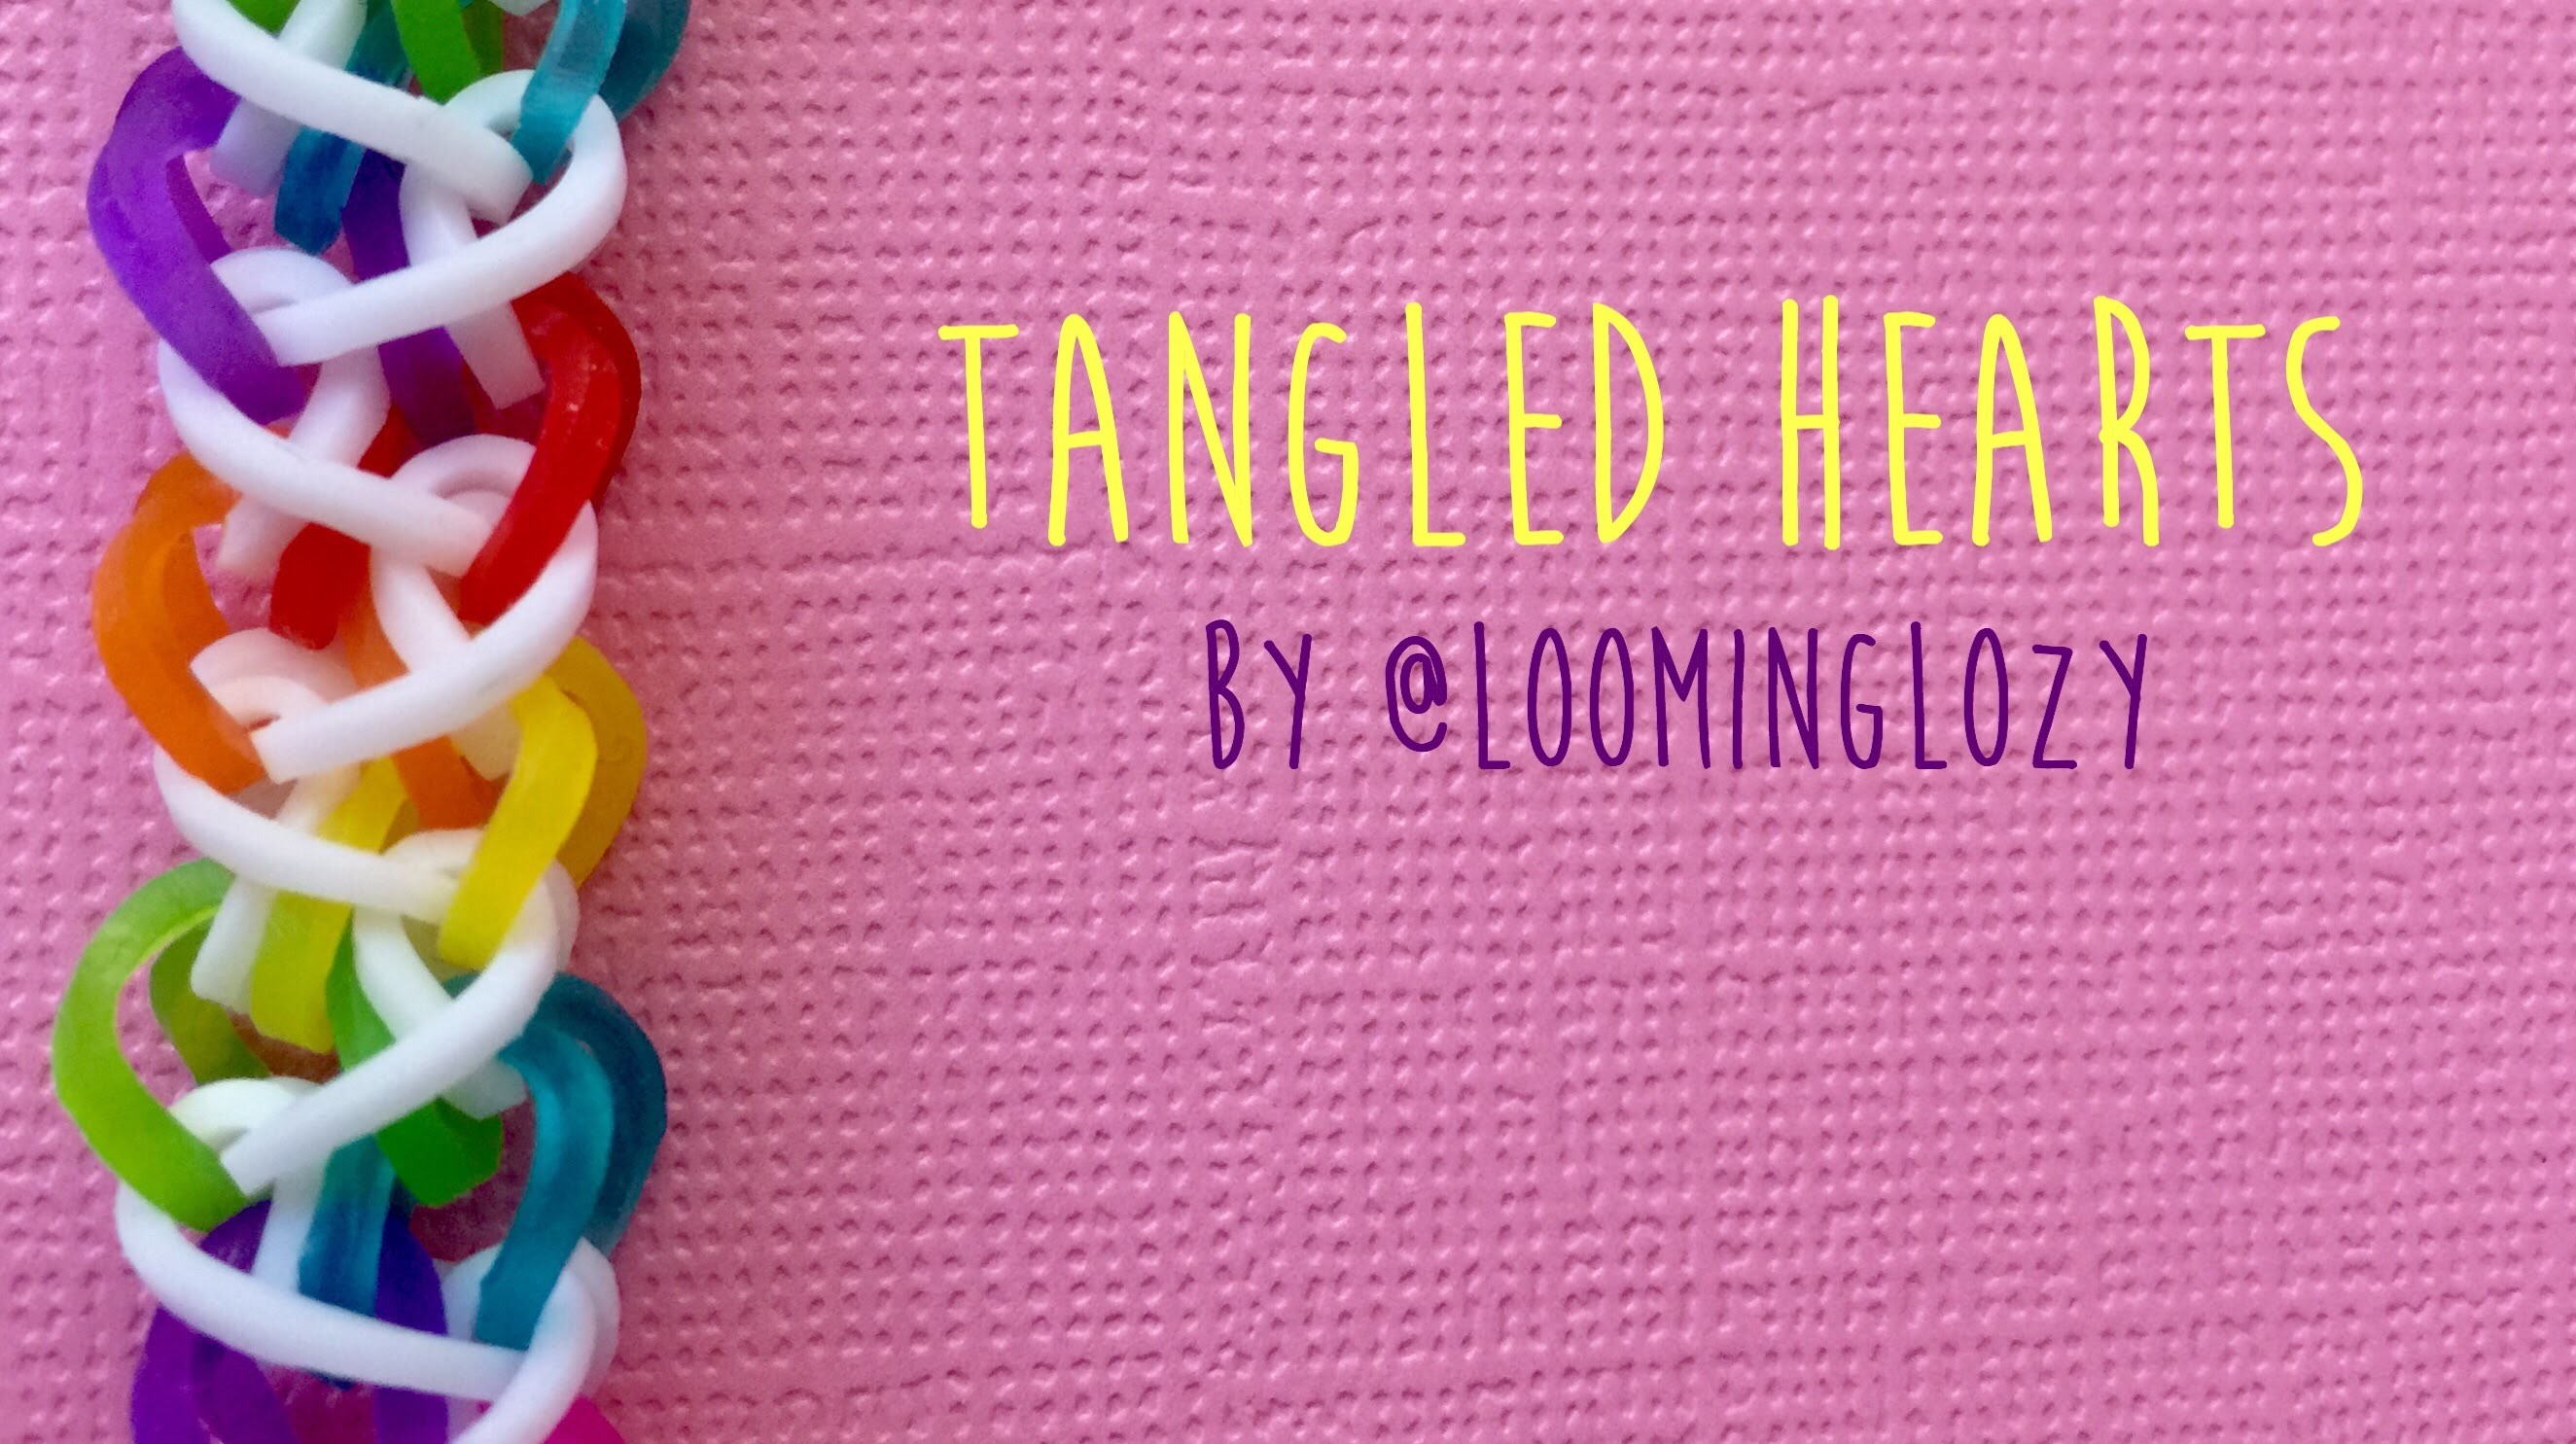 Rainbow Loom Bands Tangled Hearts by @loominglozy